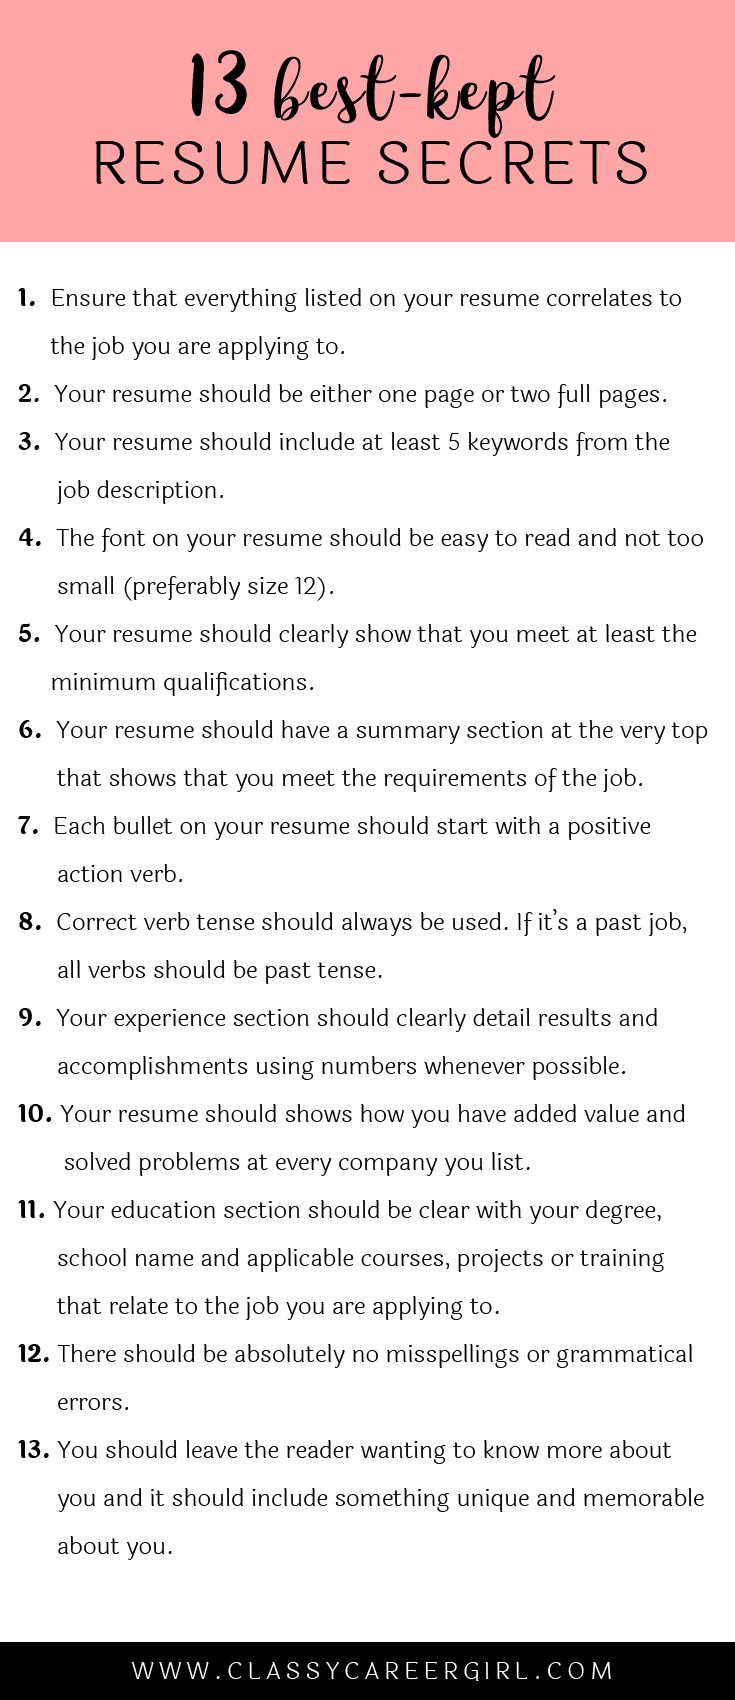 Opposenewapstandardsus  Picturesque  Ideas About Resume On Pinterest  Cv Format Resume Cv And  With Exciting Some Hiring Managers Will Toss Your Resume Out If You Dont Know These  With Cool Resumes With No Experience Also Mba On Resume In Addition Property Manager Resume Sample And Making A Resume In Word As Well As Sending A Resume Via Email Additionally Google Docs Resume Template Free From Pinterestcom With Opposenewapstandardsus  Exciting  Ideas About Resume On Pinterest  Cv Format Resume Cv And  With Cool Some Hiring Managers Will Toss Your Resume Out If You Dont Know These  And Picturesque Resumes With No Experience Also Mba On Resume In Addition Property Manager Resume Sample From Pinterestcom